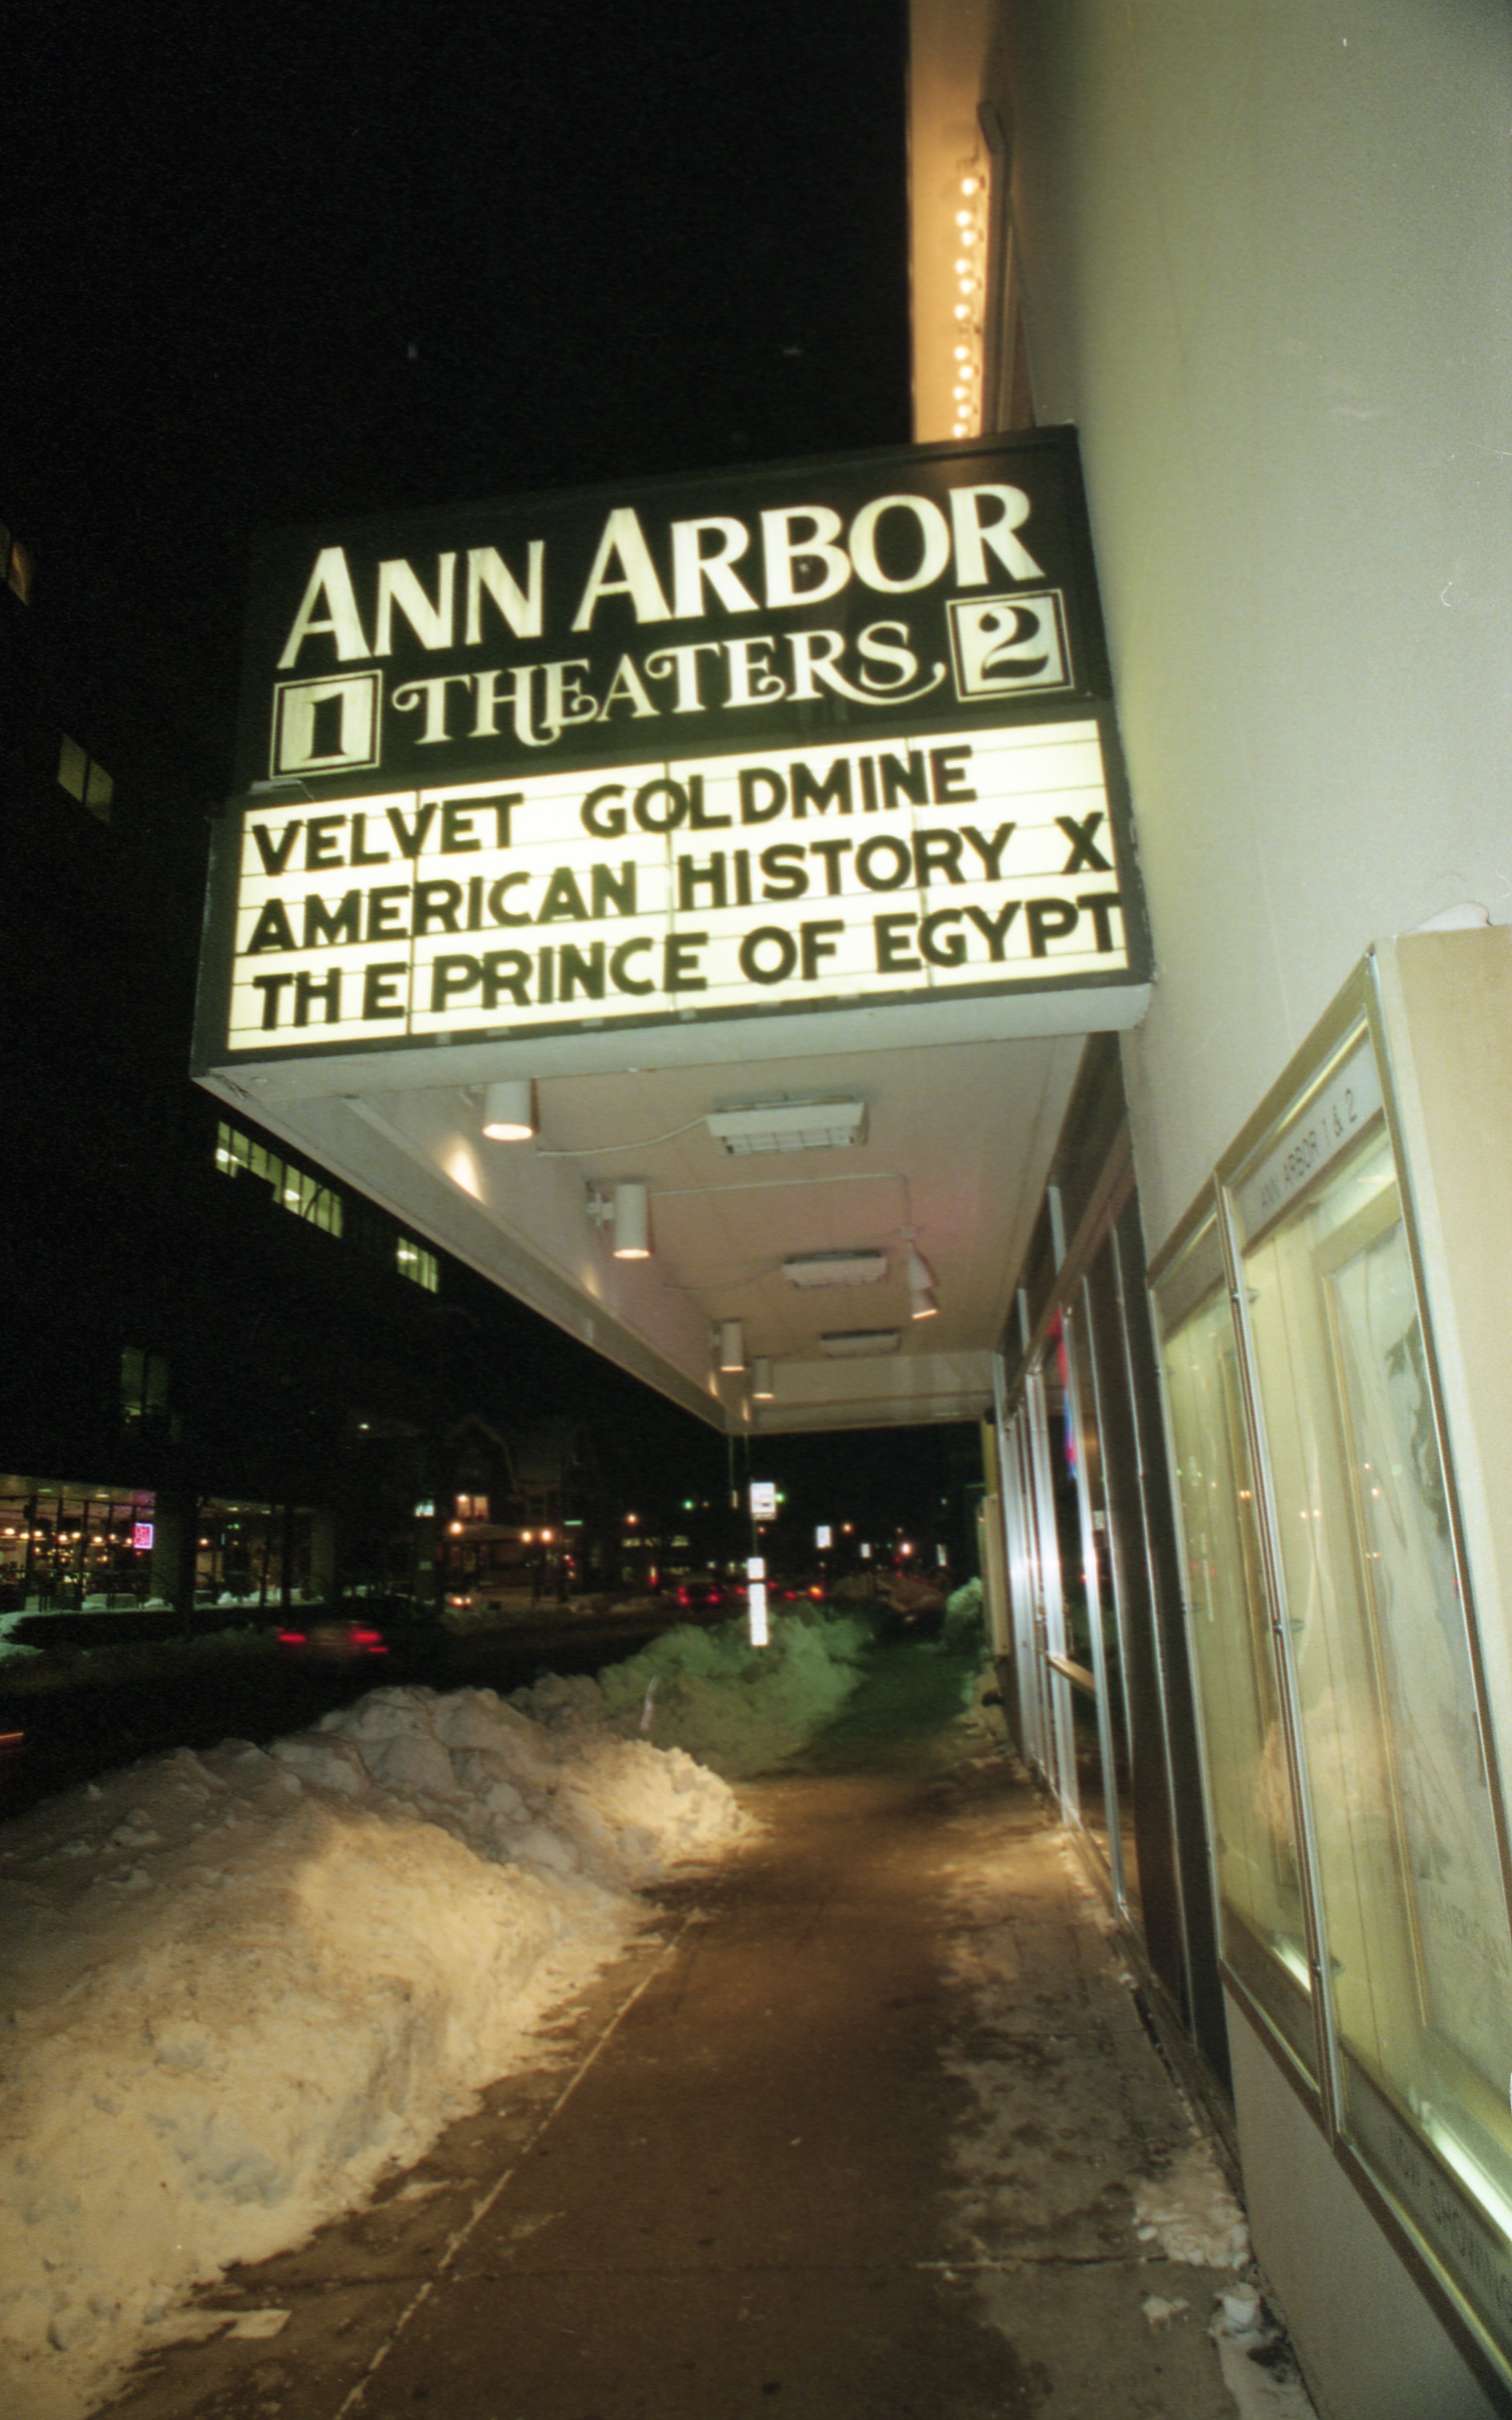 Ann Arbor Theaters 1 & 2, 210 S Fifth Ave, Marquee, January 1999 image